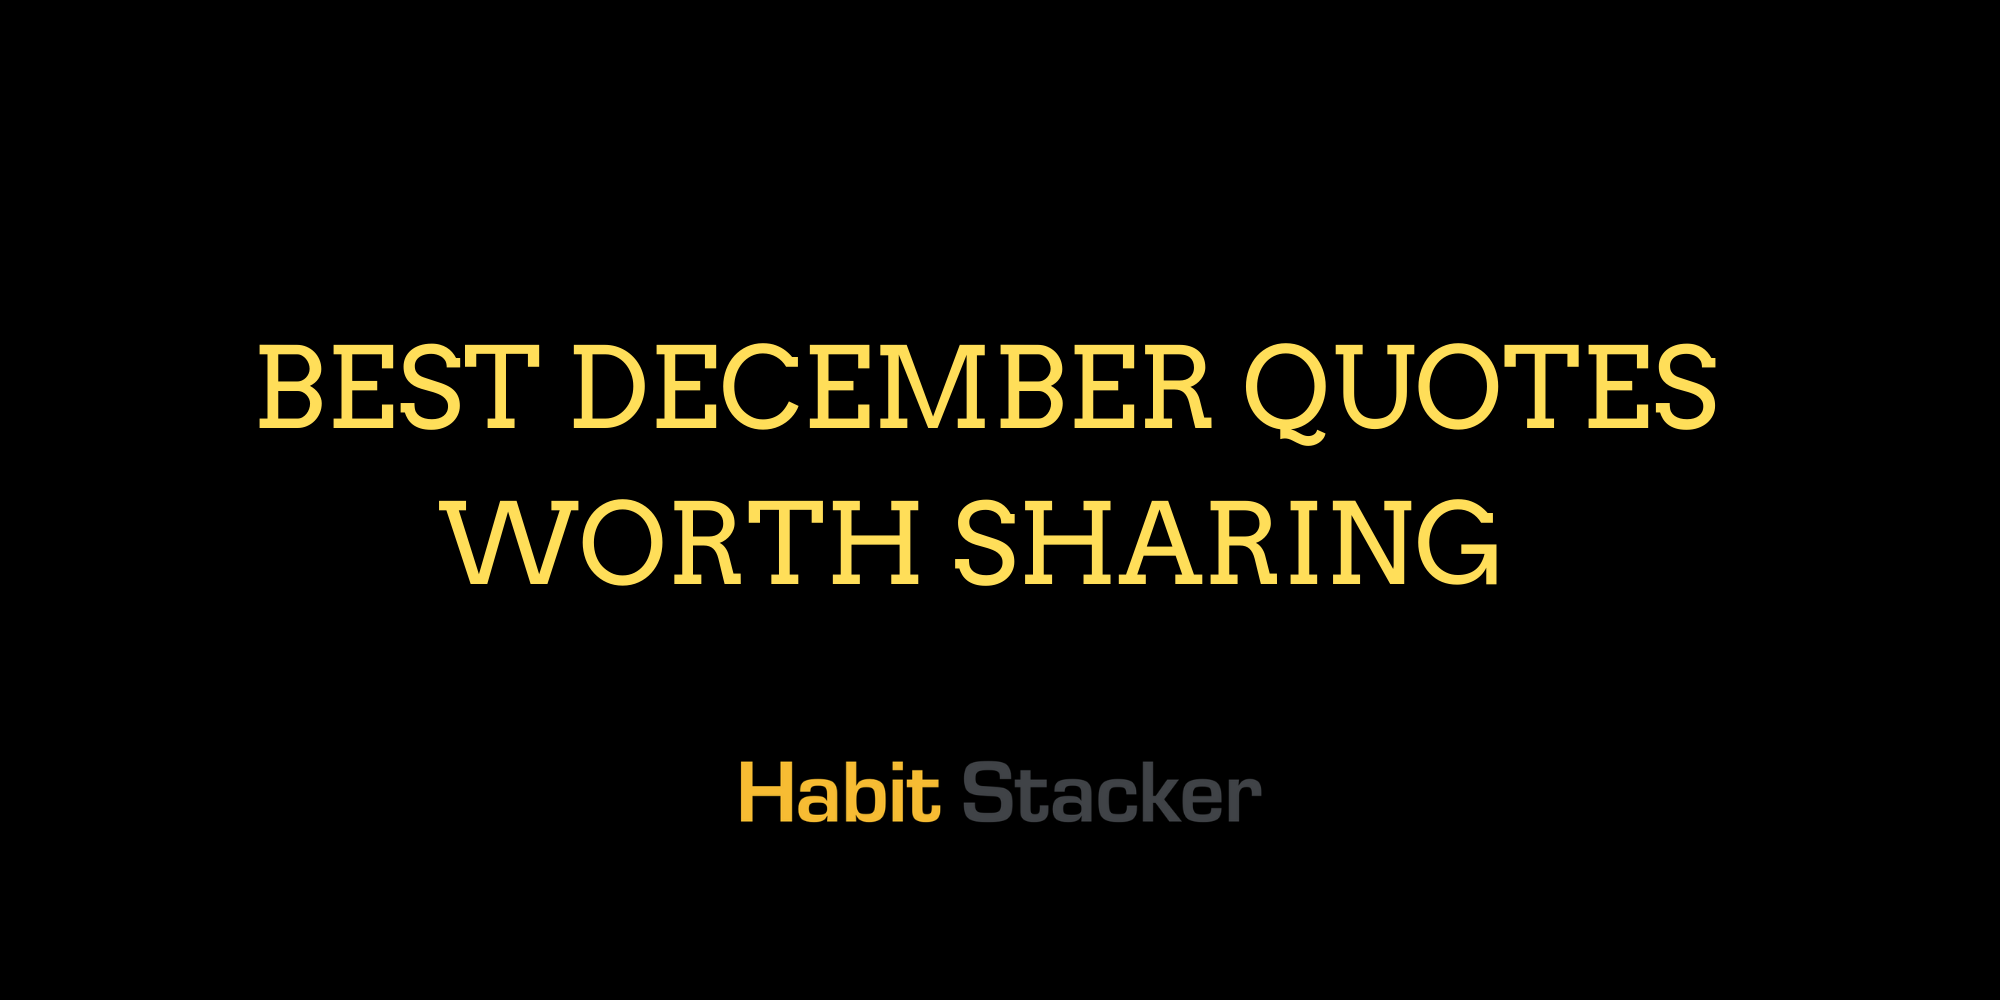 37 Best December Quotes Worth Sharing